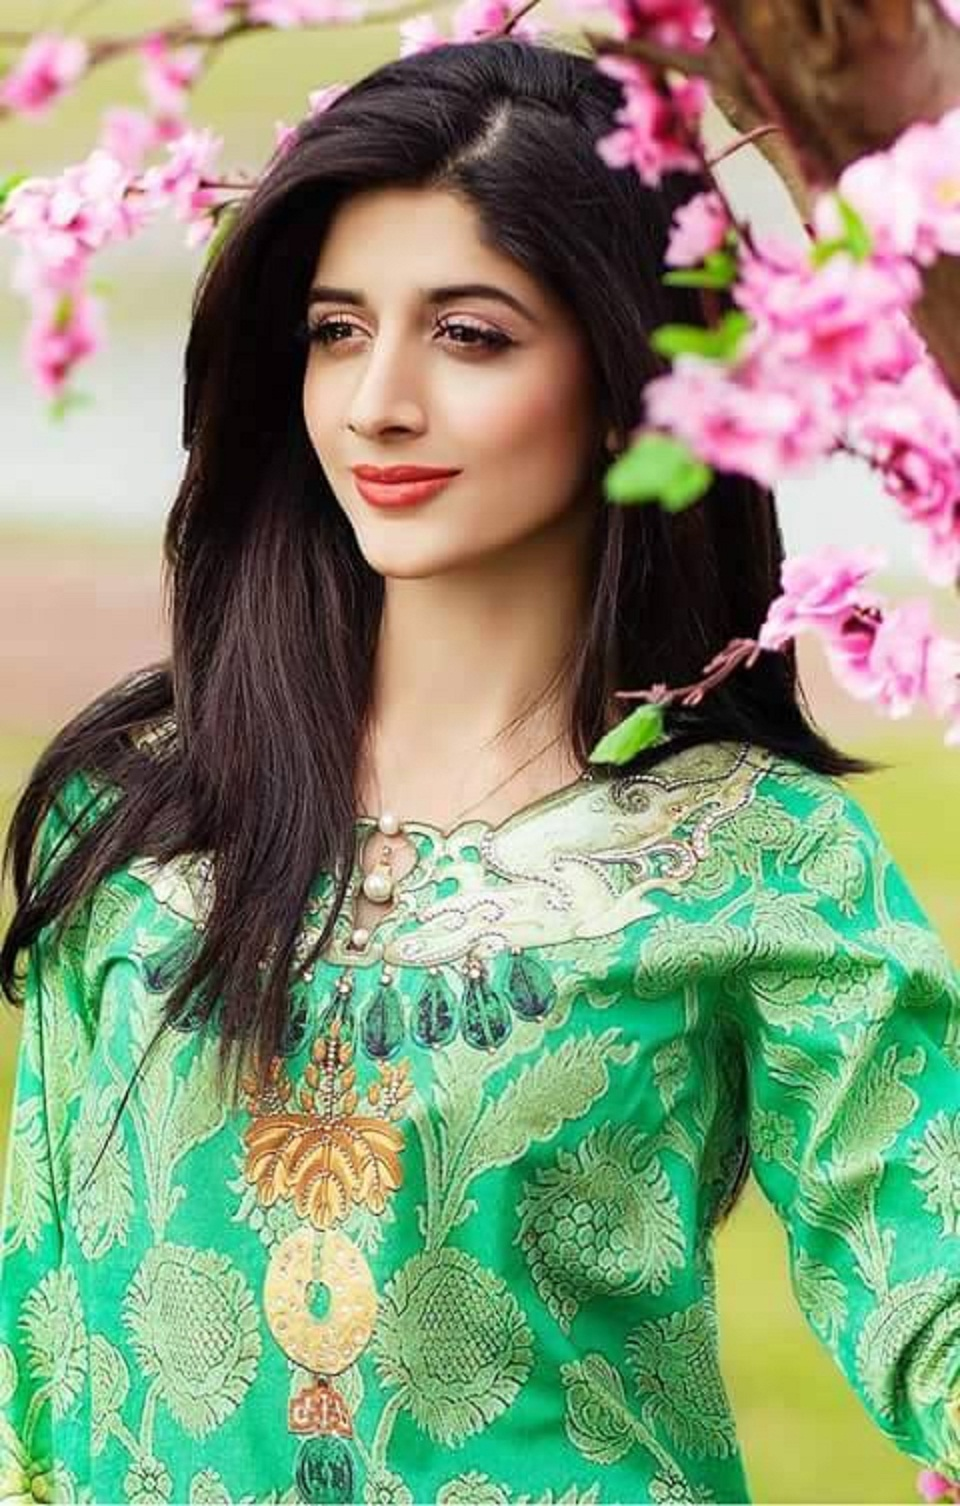 Free Stars Wallpaper: Beautiful Mawra Hocane HD Wallpaper